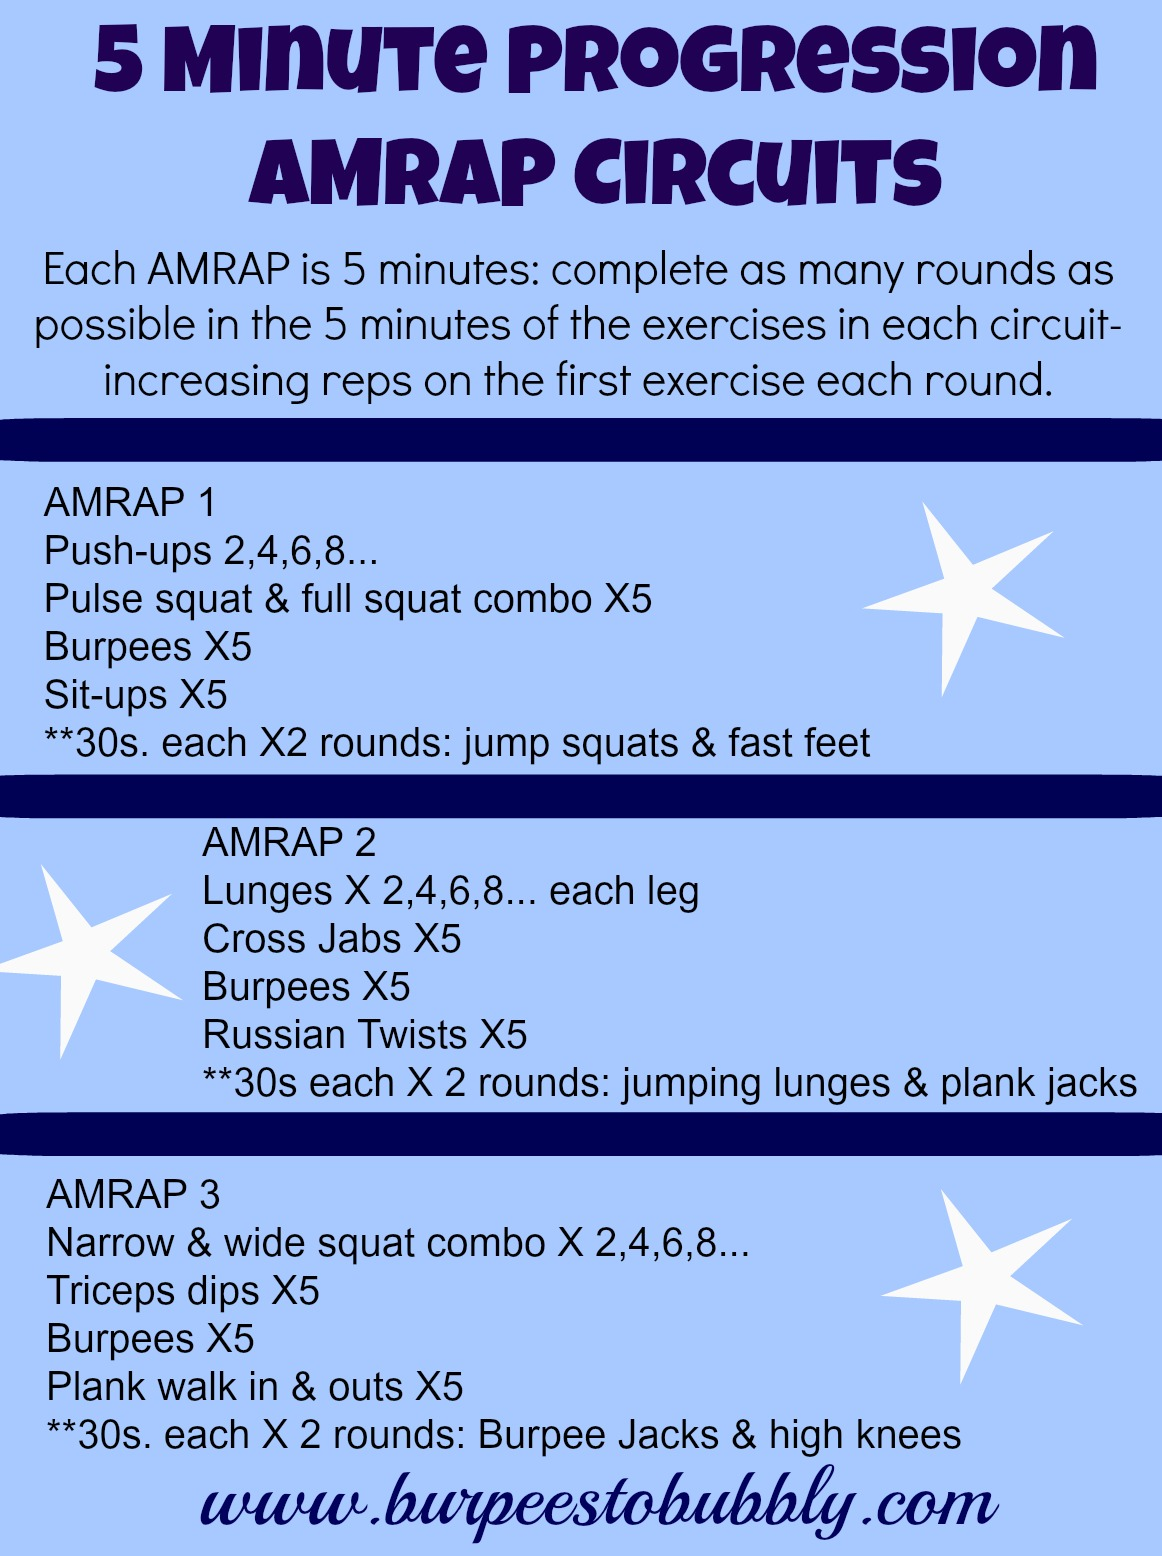 Wednesday Workout: 5 Minute Progression Bodyweight AMRAP